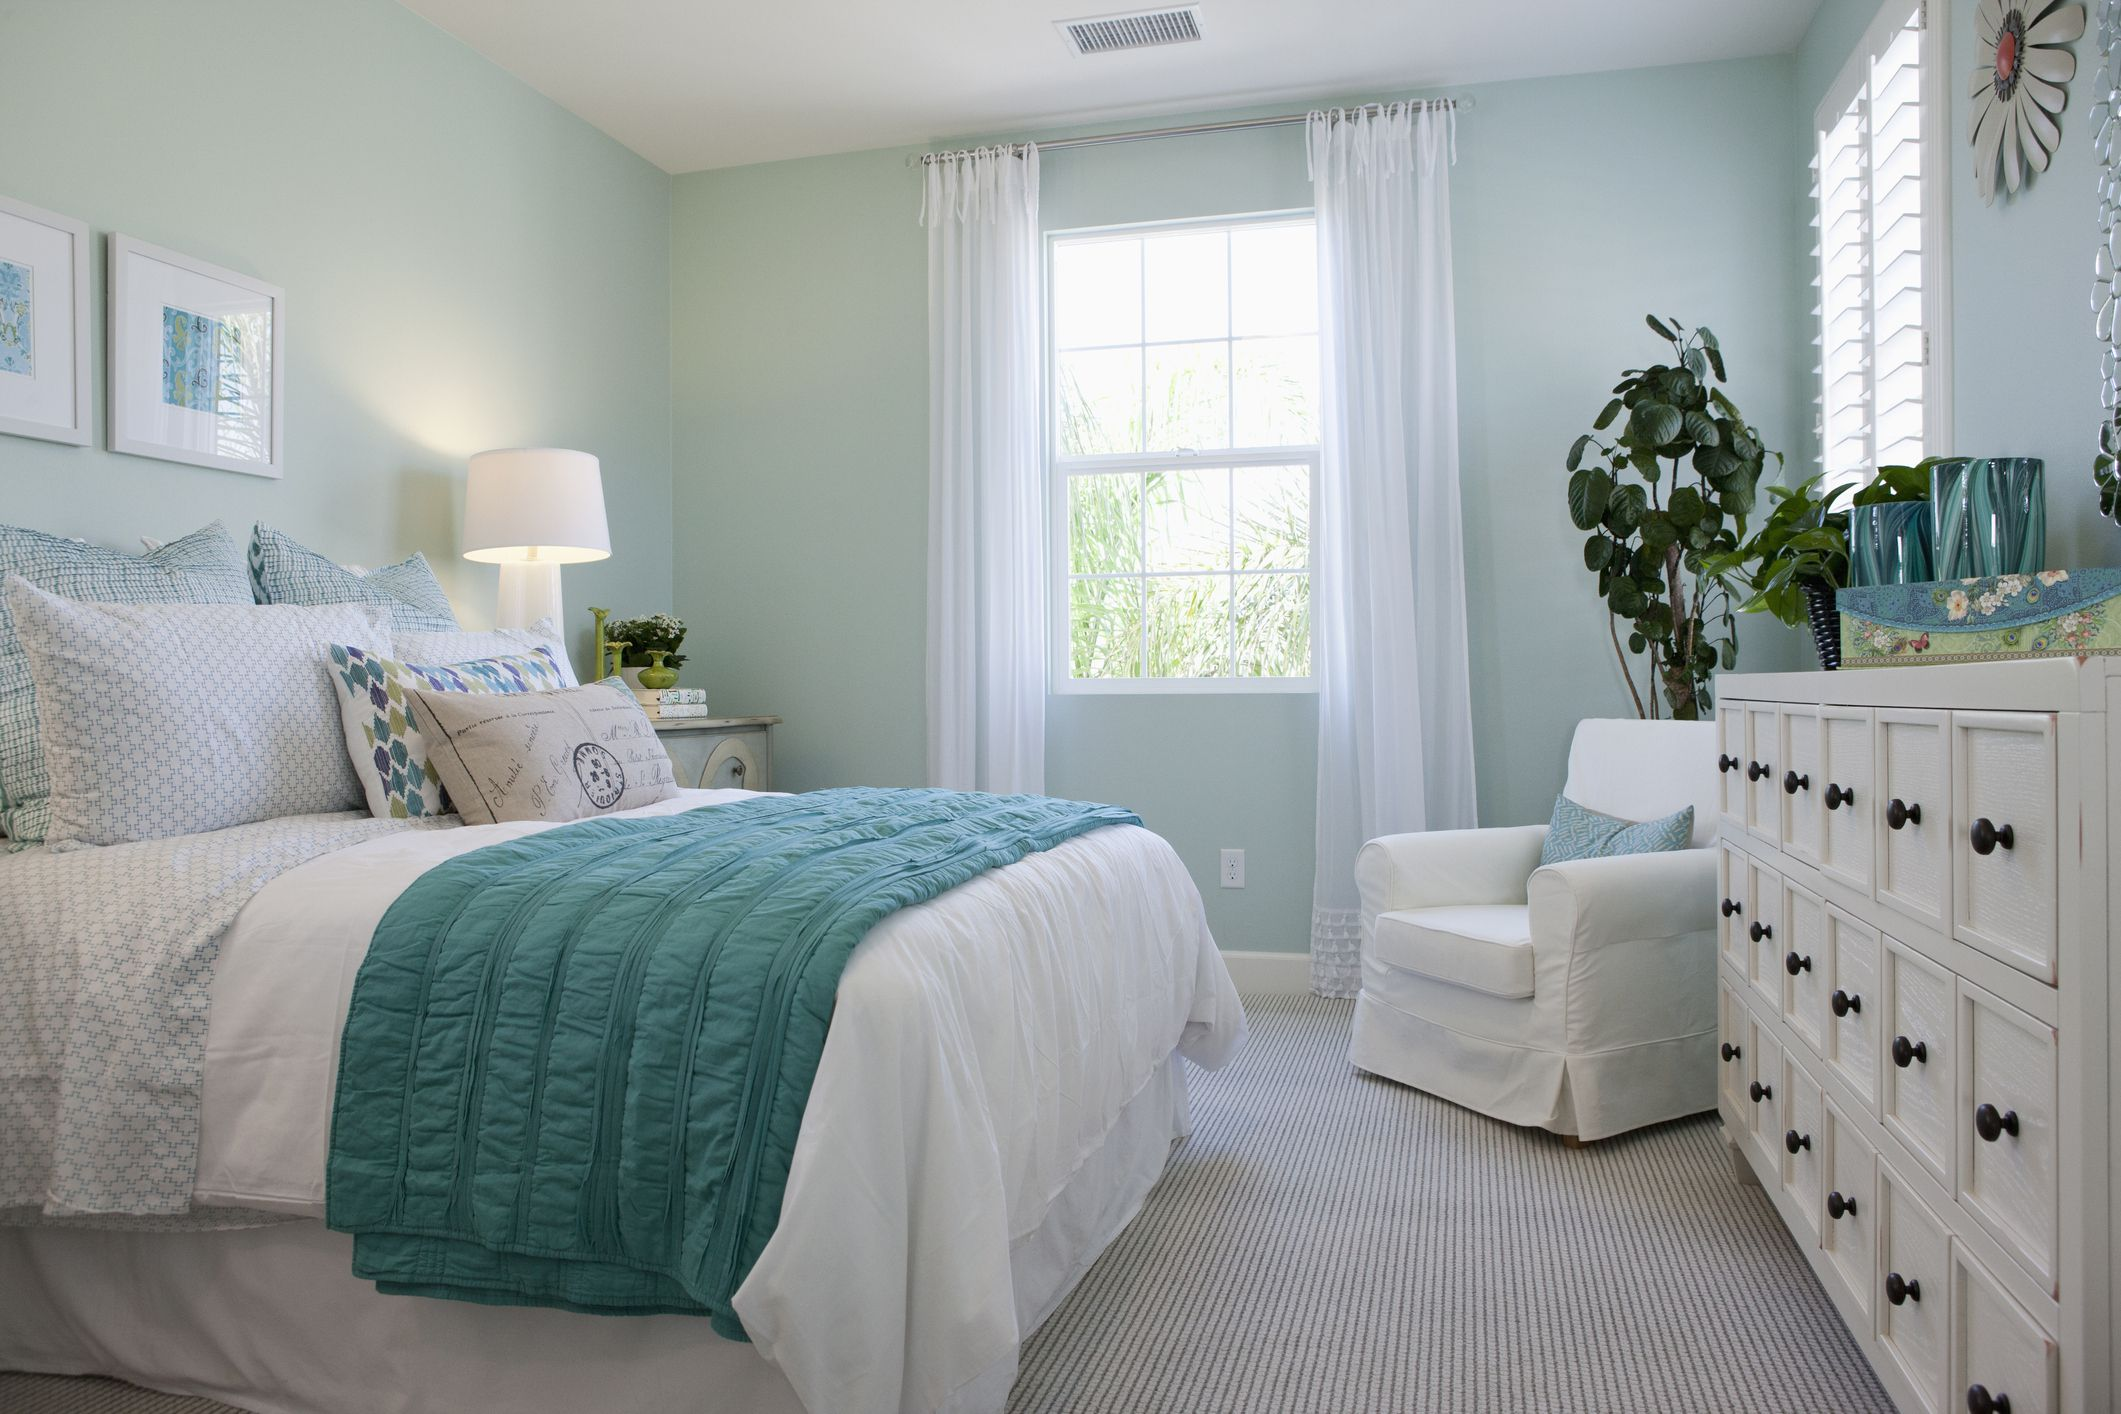 bedroom paint colors how to choose the right paint colors for your bedroom 5803